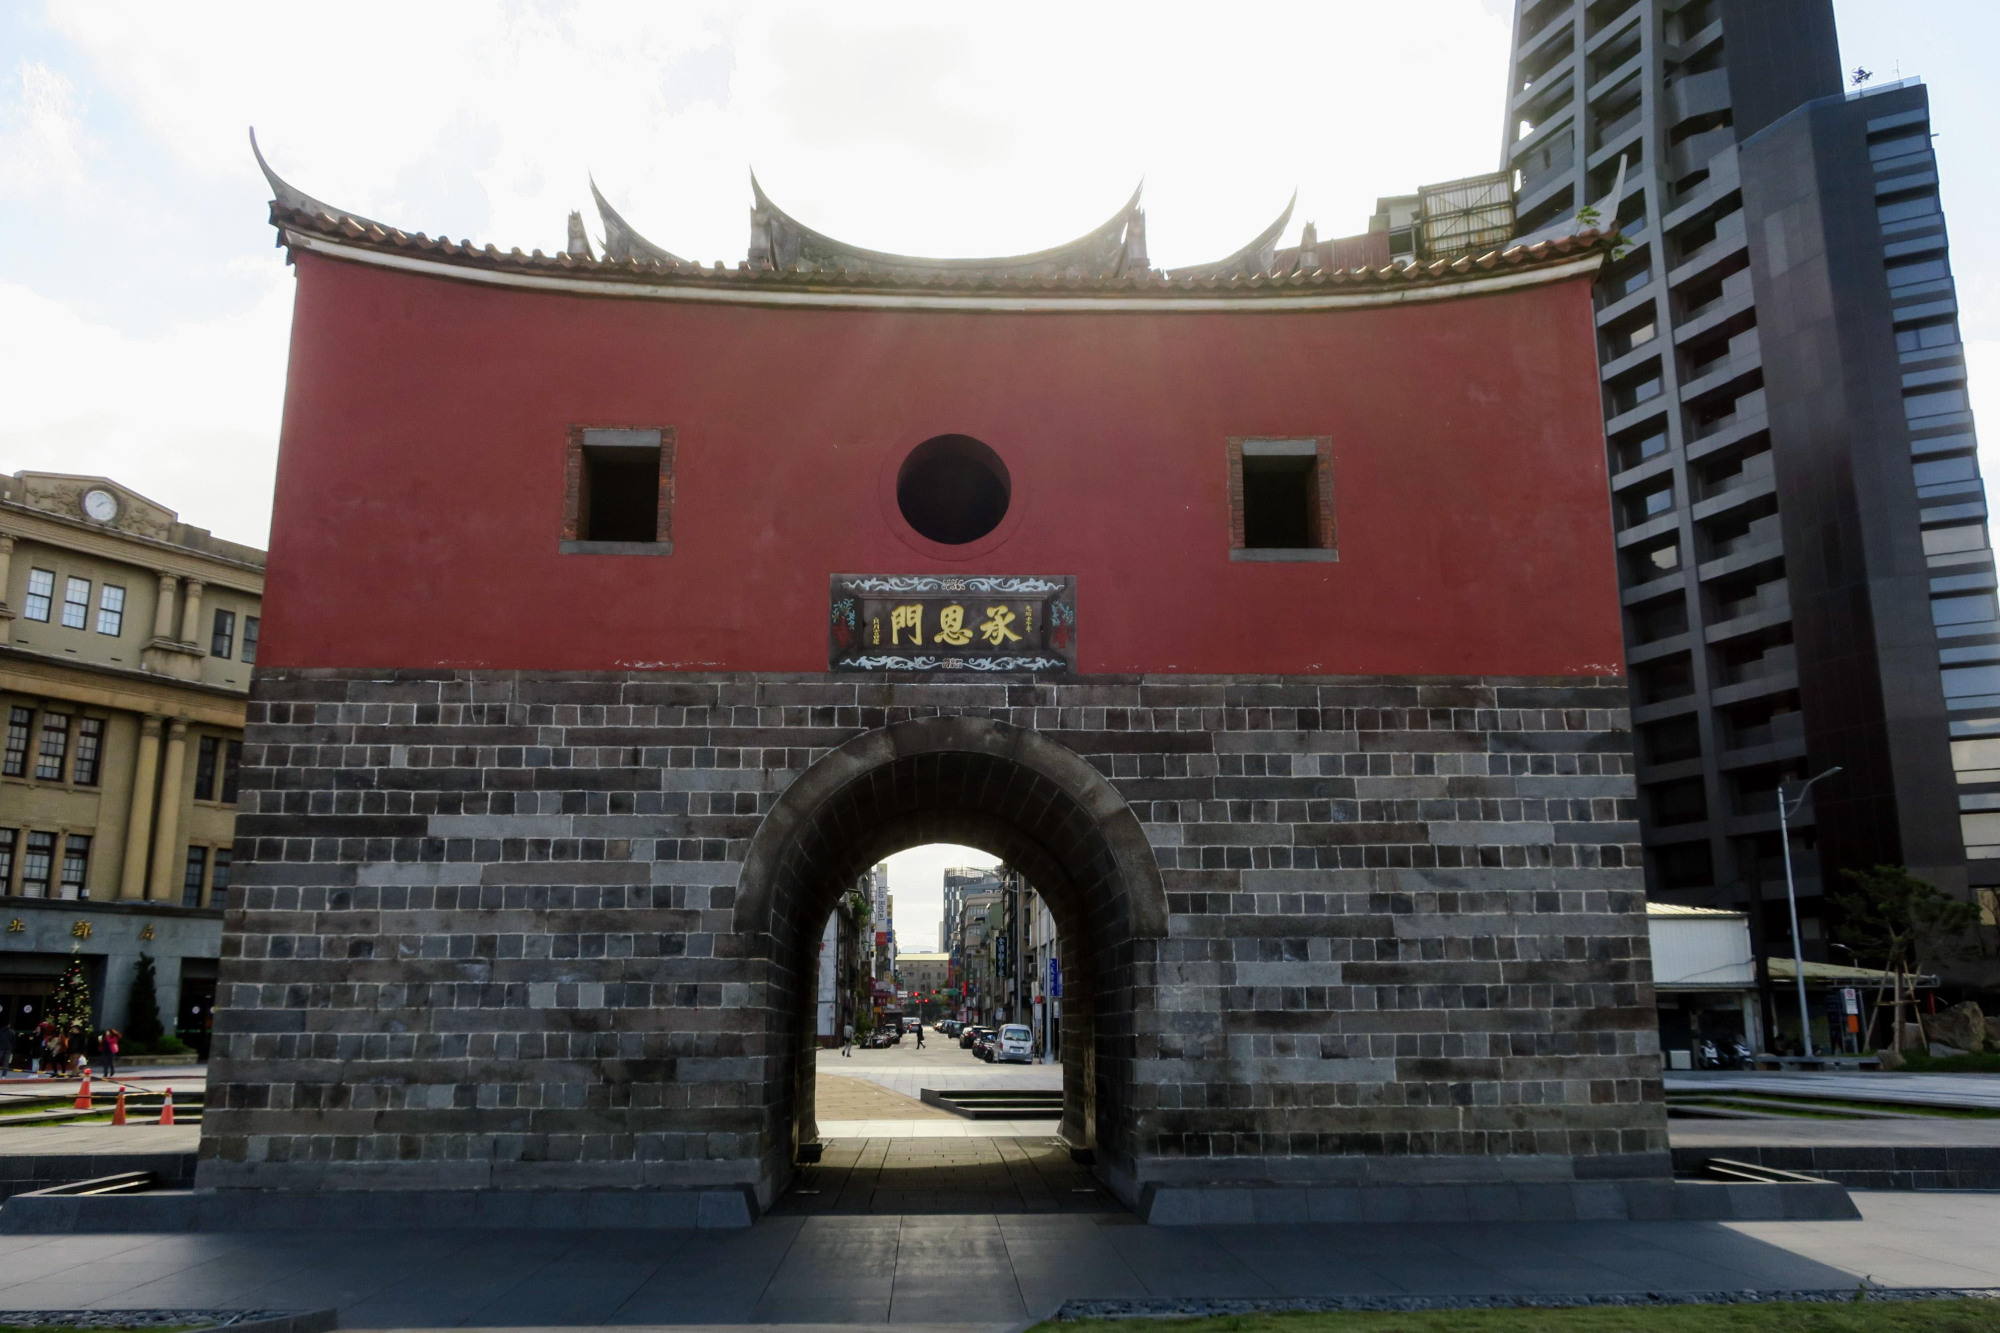 The North Gate in Taipei is seen on Dec. 20, 2017, near the century-old Taipei Beimen (North Gate) Post Office (left). | KYODO